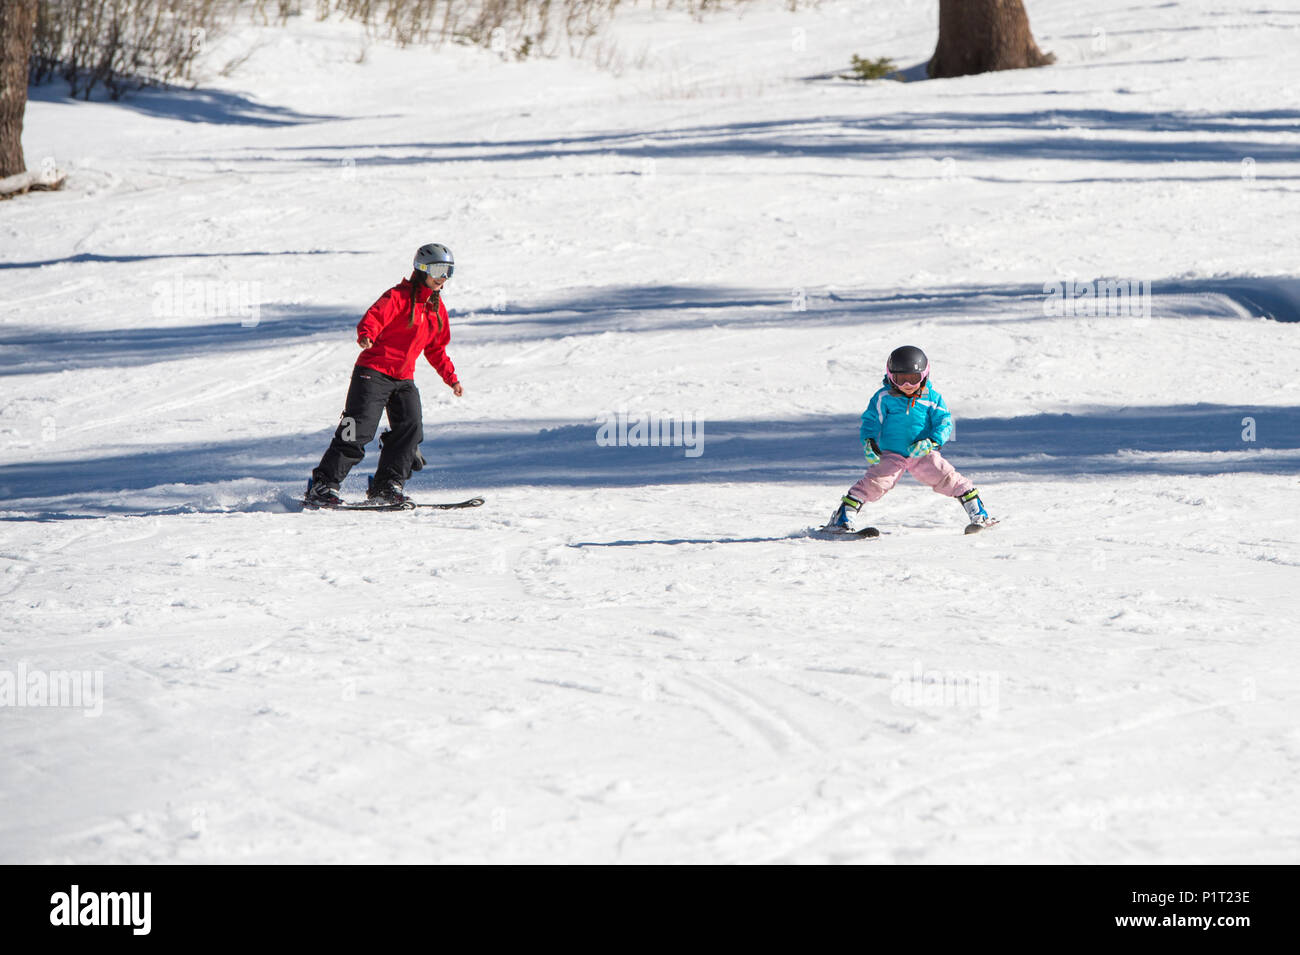 Mother teaching young daughter how to ski at Squaw Valley Ski Resort in California, North America. - Stock Image